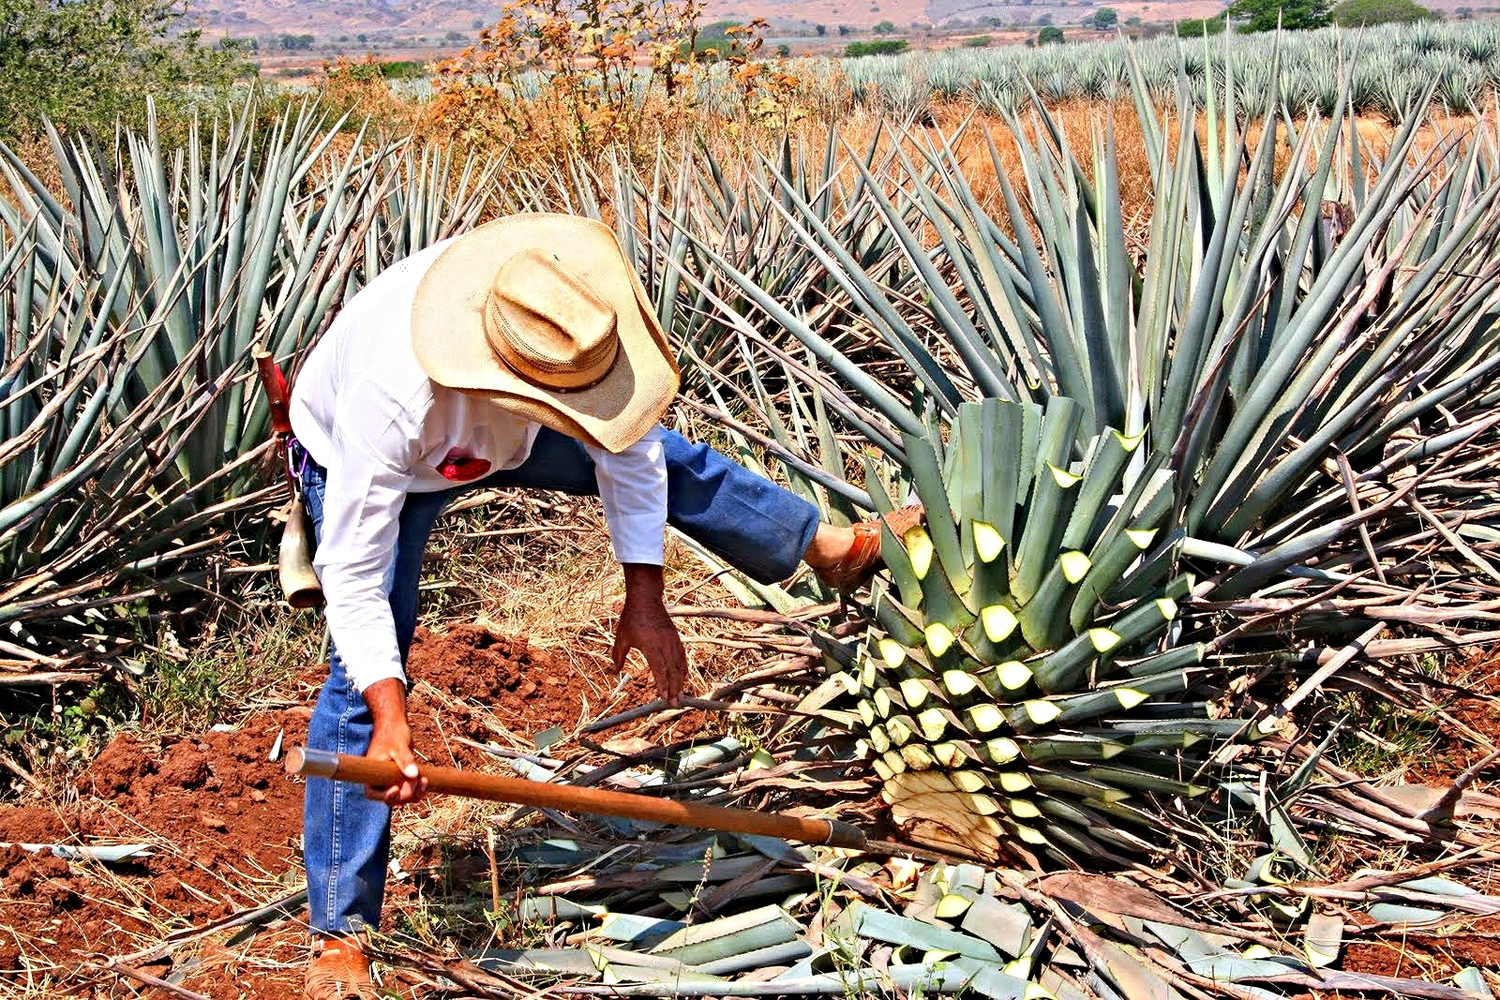 Mexico+-+Tequila+(14).JPG